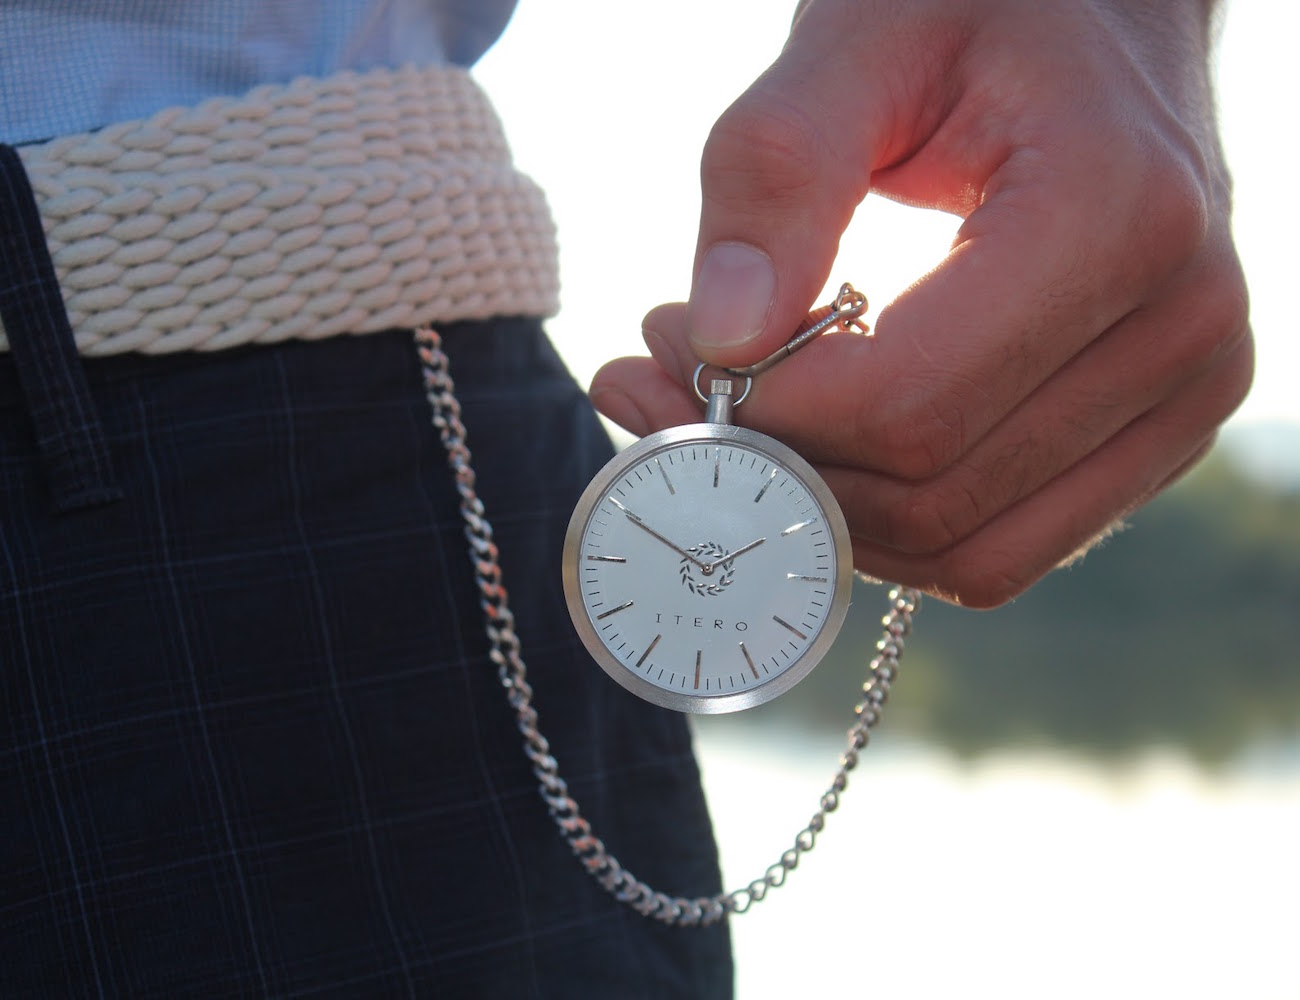 Itero – Pocket Watches Are Back